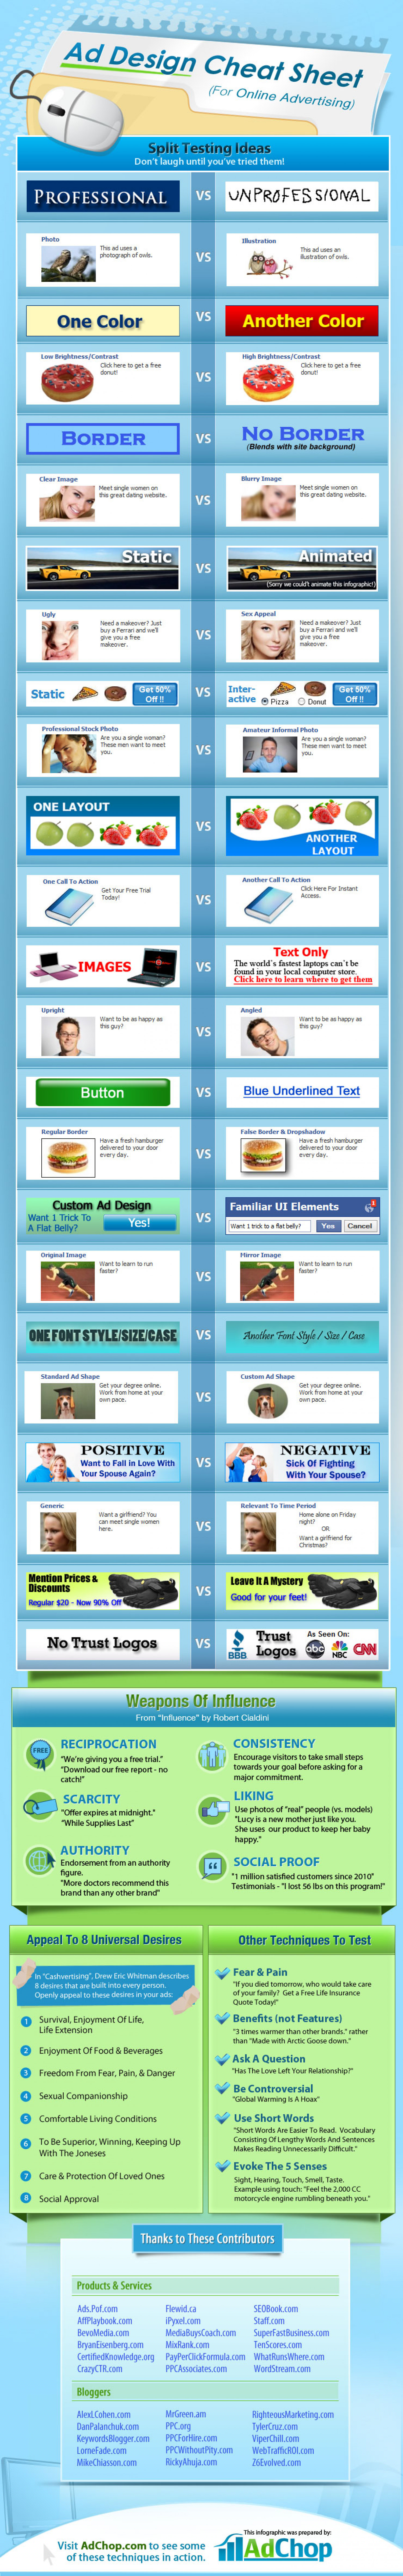 Online Ad Design Cheat Sheet Infographic